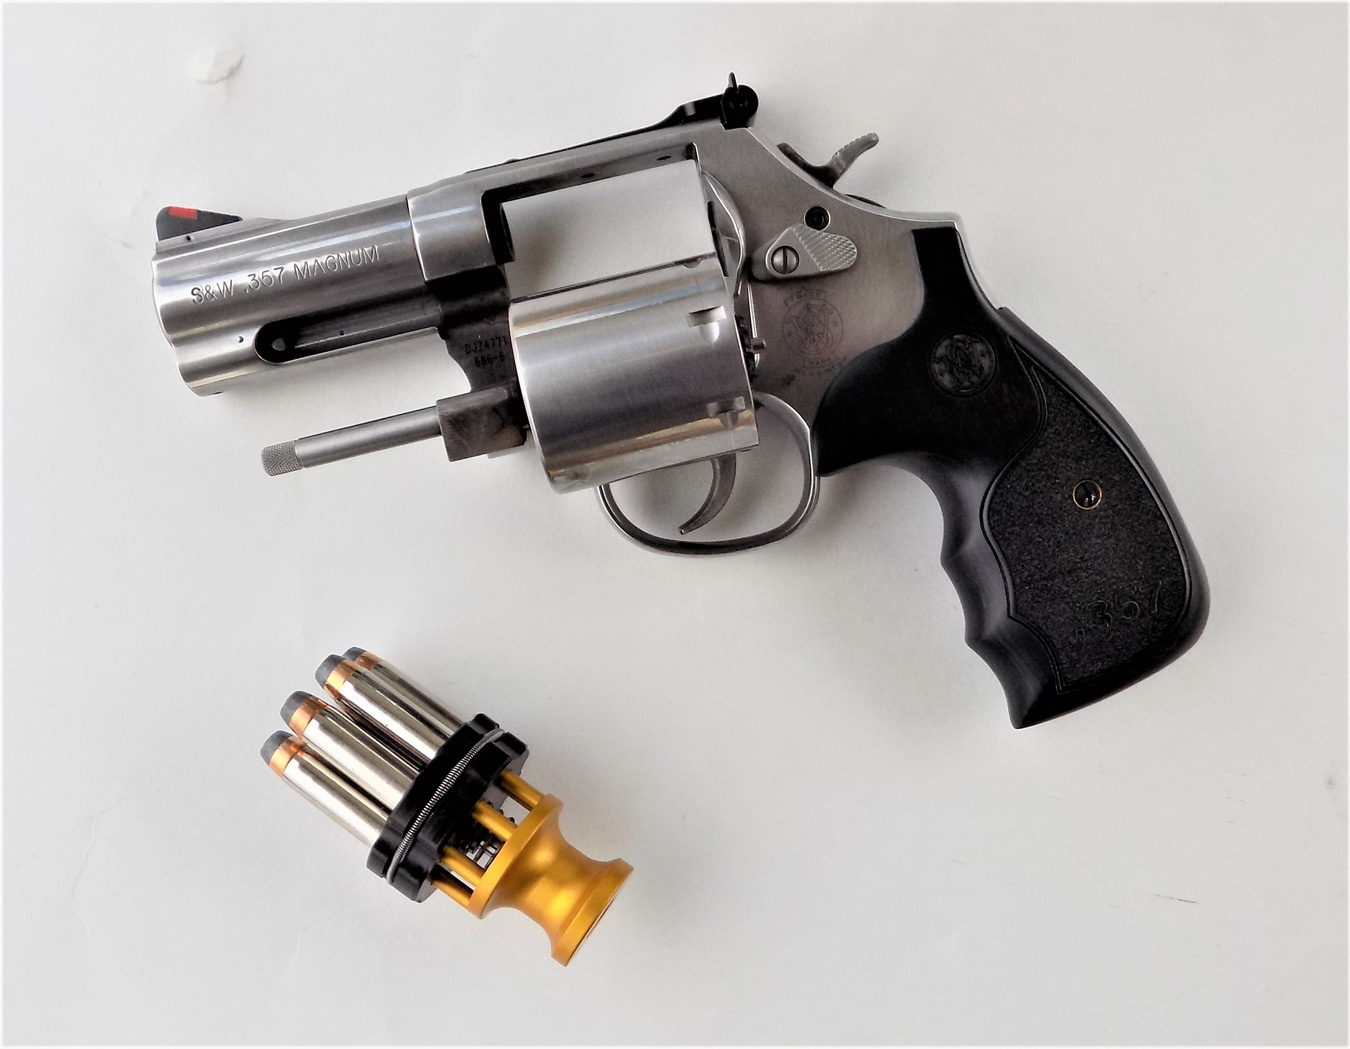 Smith and Wesson 686 plus revolver with Speed Beez speedloader